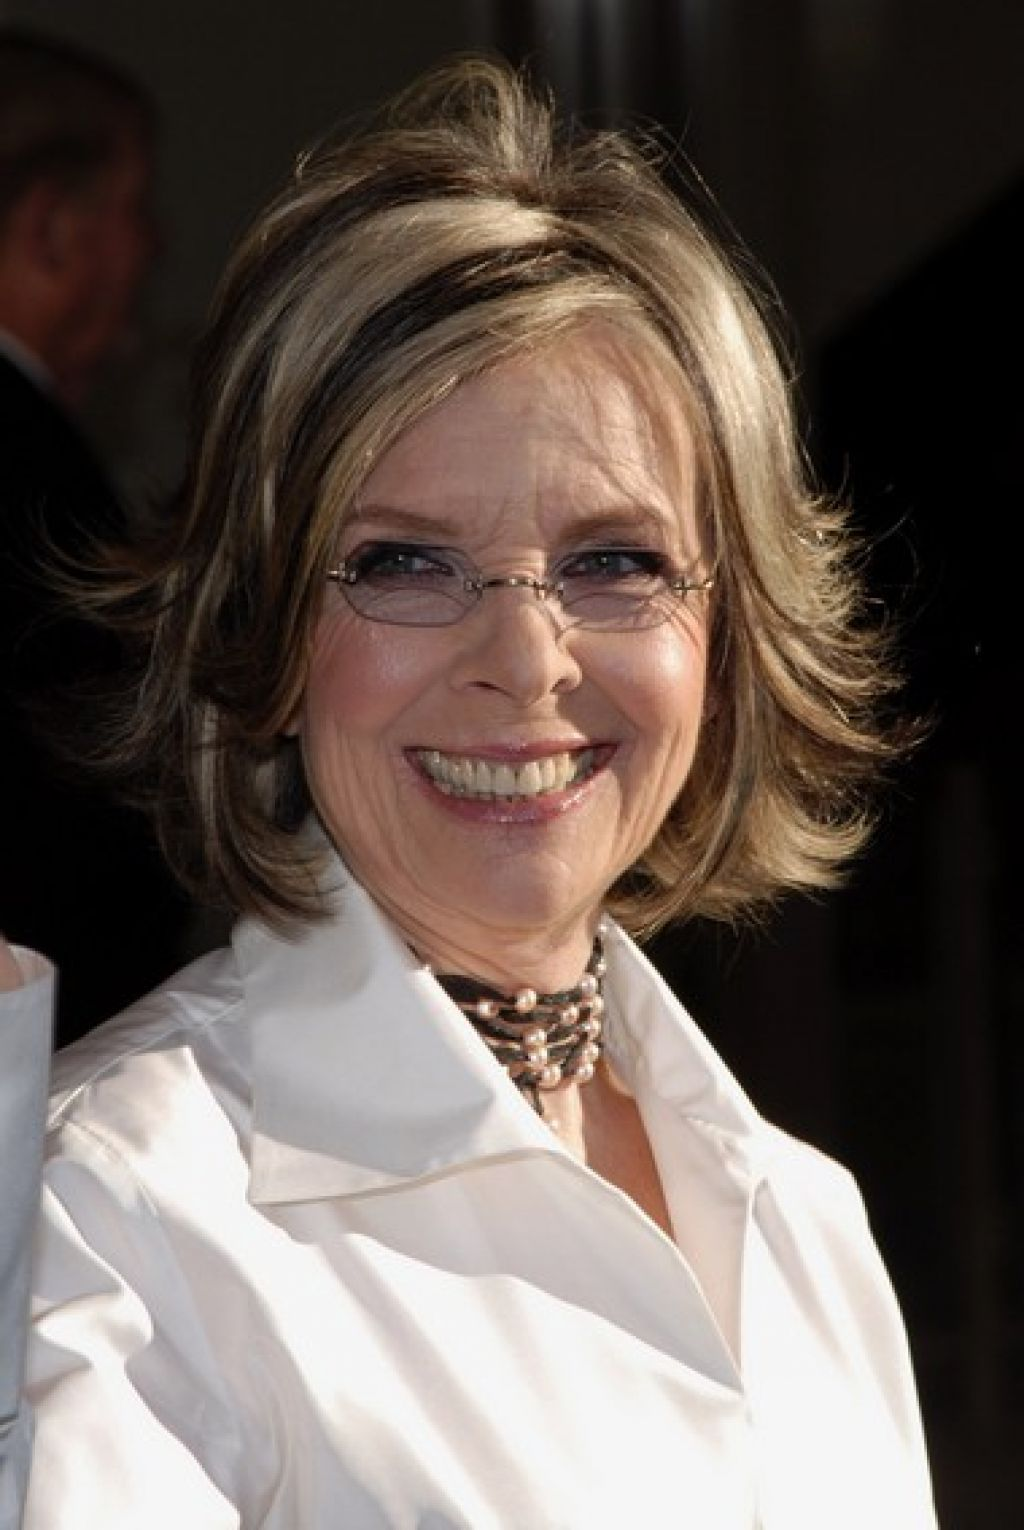 Diane Keaton Hairstyle Inspiration For Women Over 60 56beaa9b98229 Jpg 1024 1530 Diane Keaton Hairstyles Hollywood Hair Diane Keaton